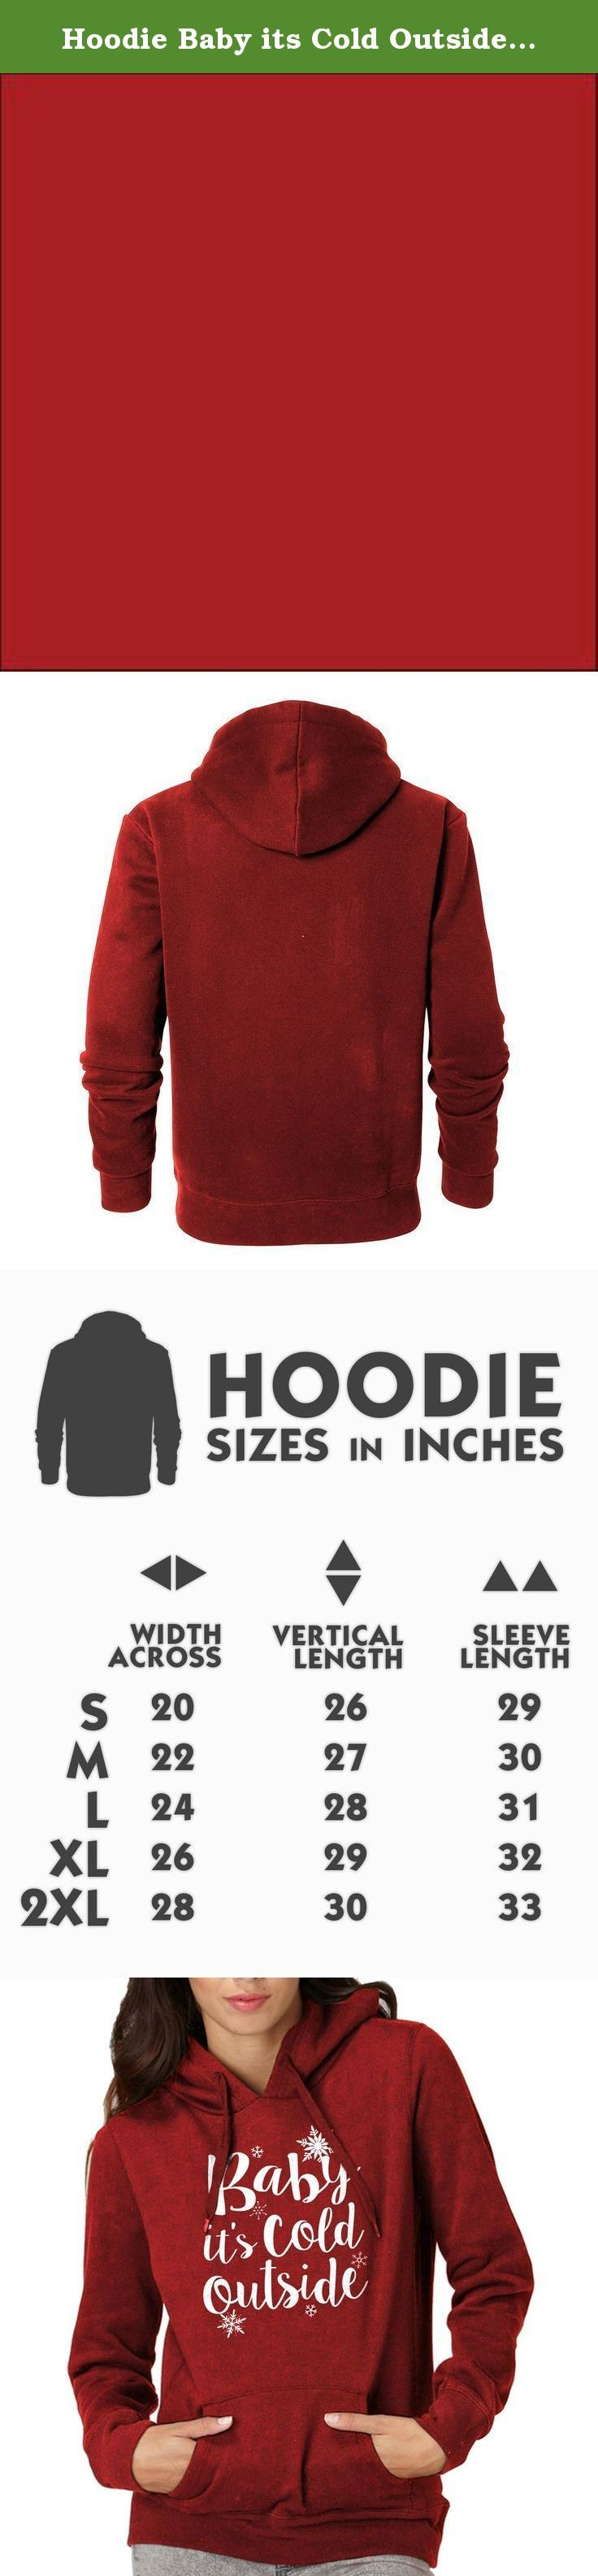 Hoodie Baby its Cold Outside Adult Red Large. Description: I really can't stay. I gotta go away... but baby its cold outside... A great top for this blustery sweater weather.Baby its Cold Outside All of our designs are printed in the U.S. on high quality garments. Just wait until you slip on one of these super-soft tops... you'll never want to take it off. Indica Plateau has everything in stock and ready to ship. Most orders ship same day or the next day, and are delivered within 2-3...